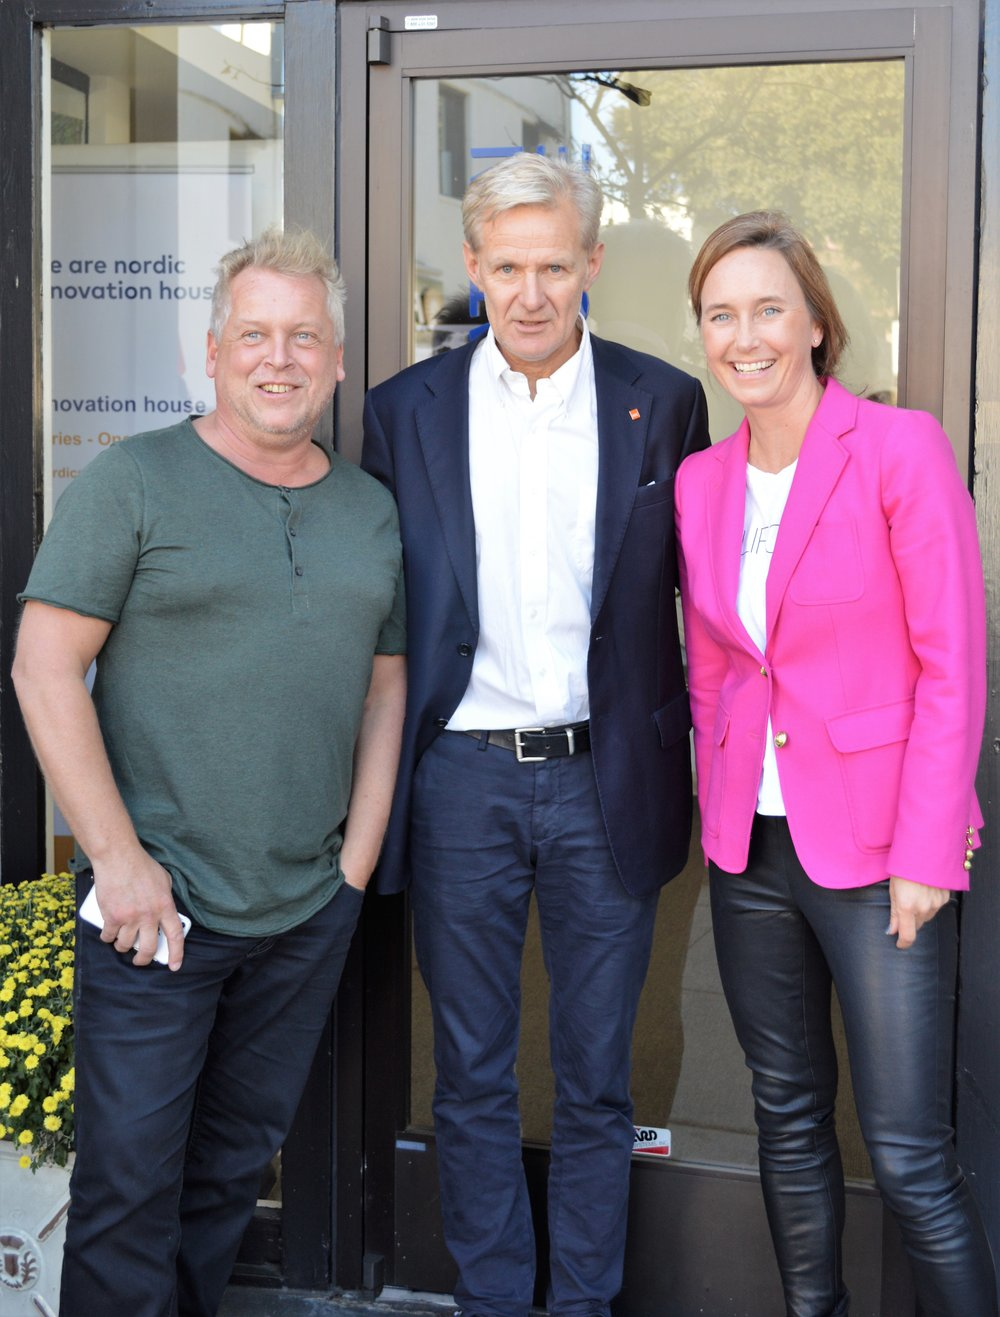 Lasse Andresen, CEO of ForgeRock, Jan Egeland, Secretary General of NRC  and Gro Dyrnes, Regional Director Innovation Norway Americas